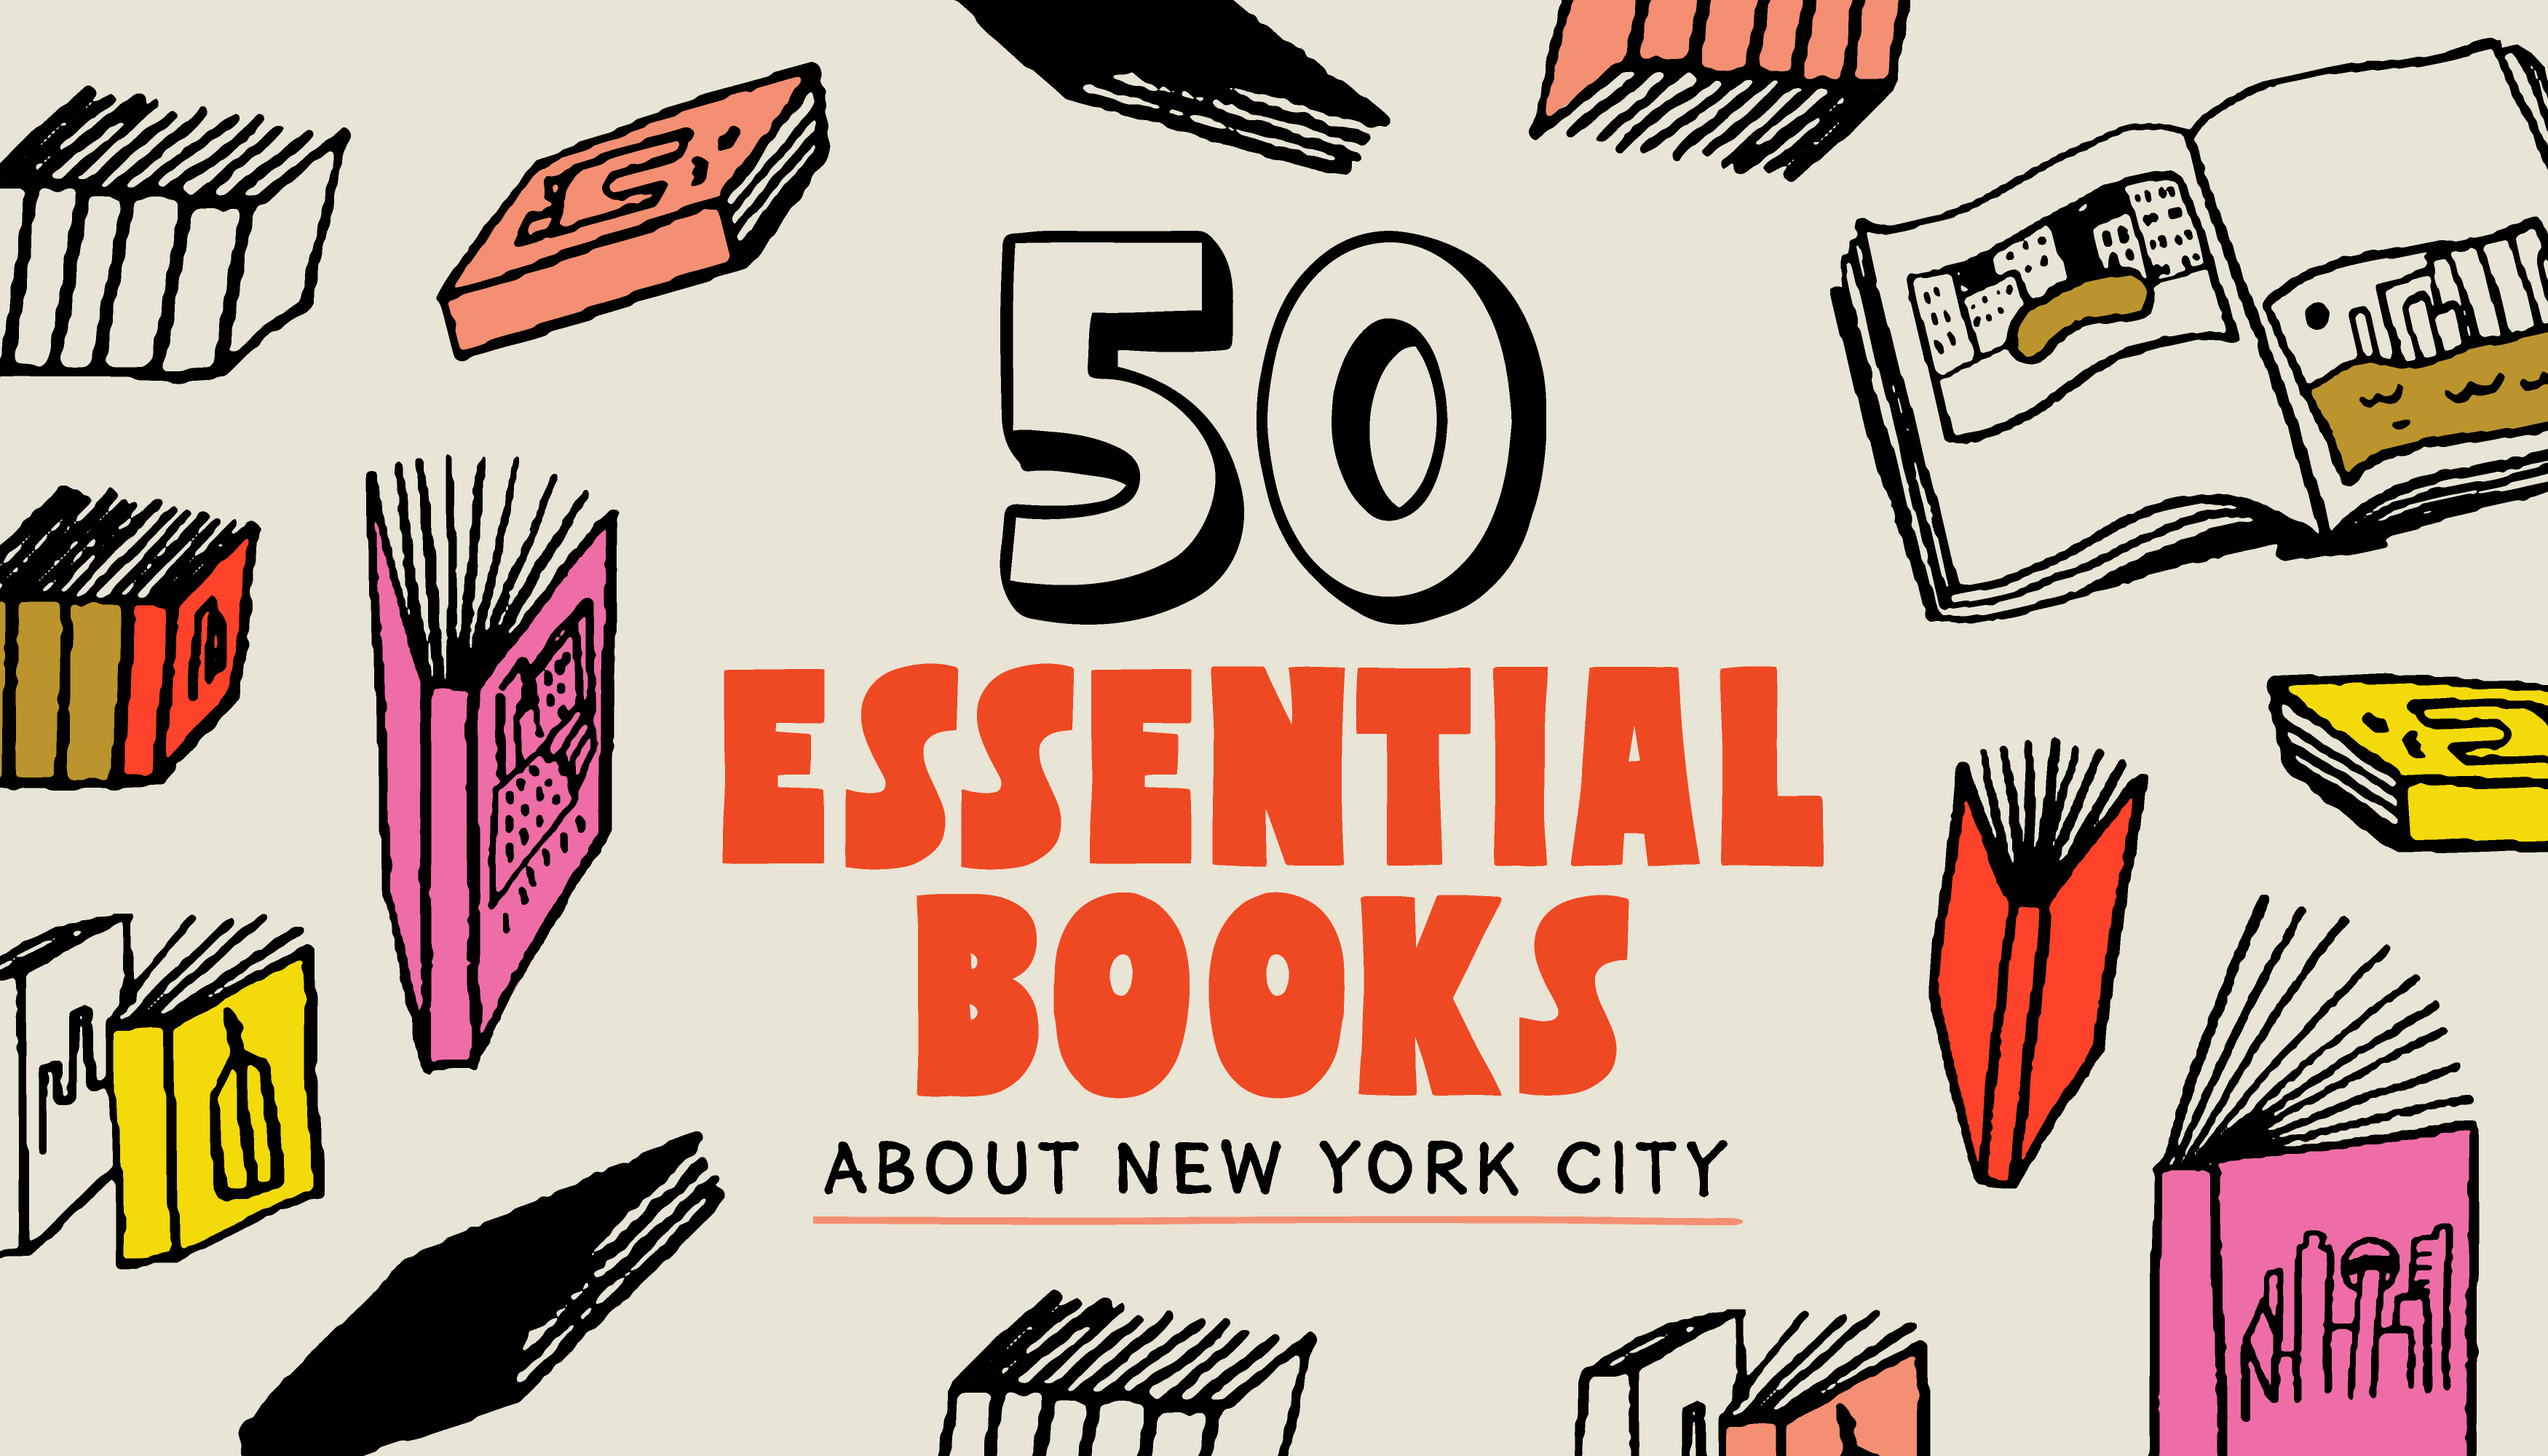 New york magazine clipart graphic download Best books about New York: 50 essential NYC books - Curbed NY graphic download